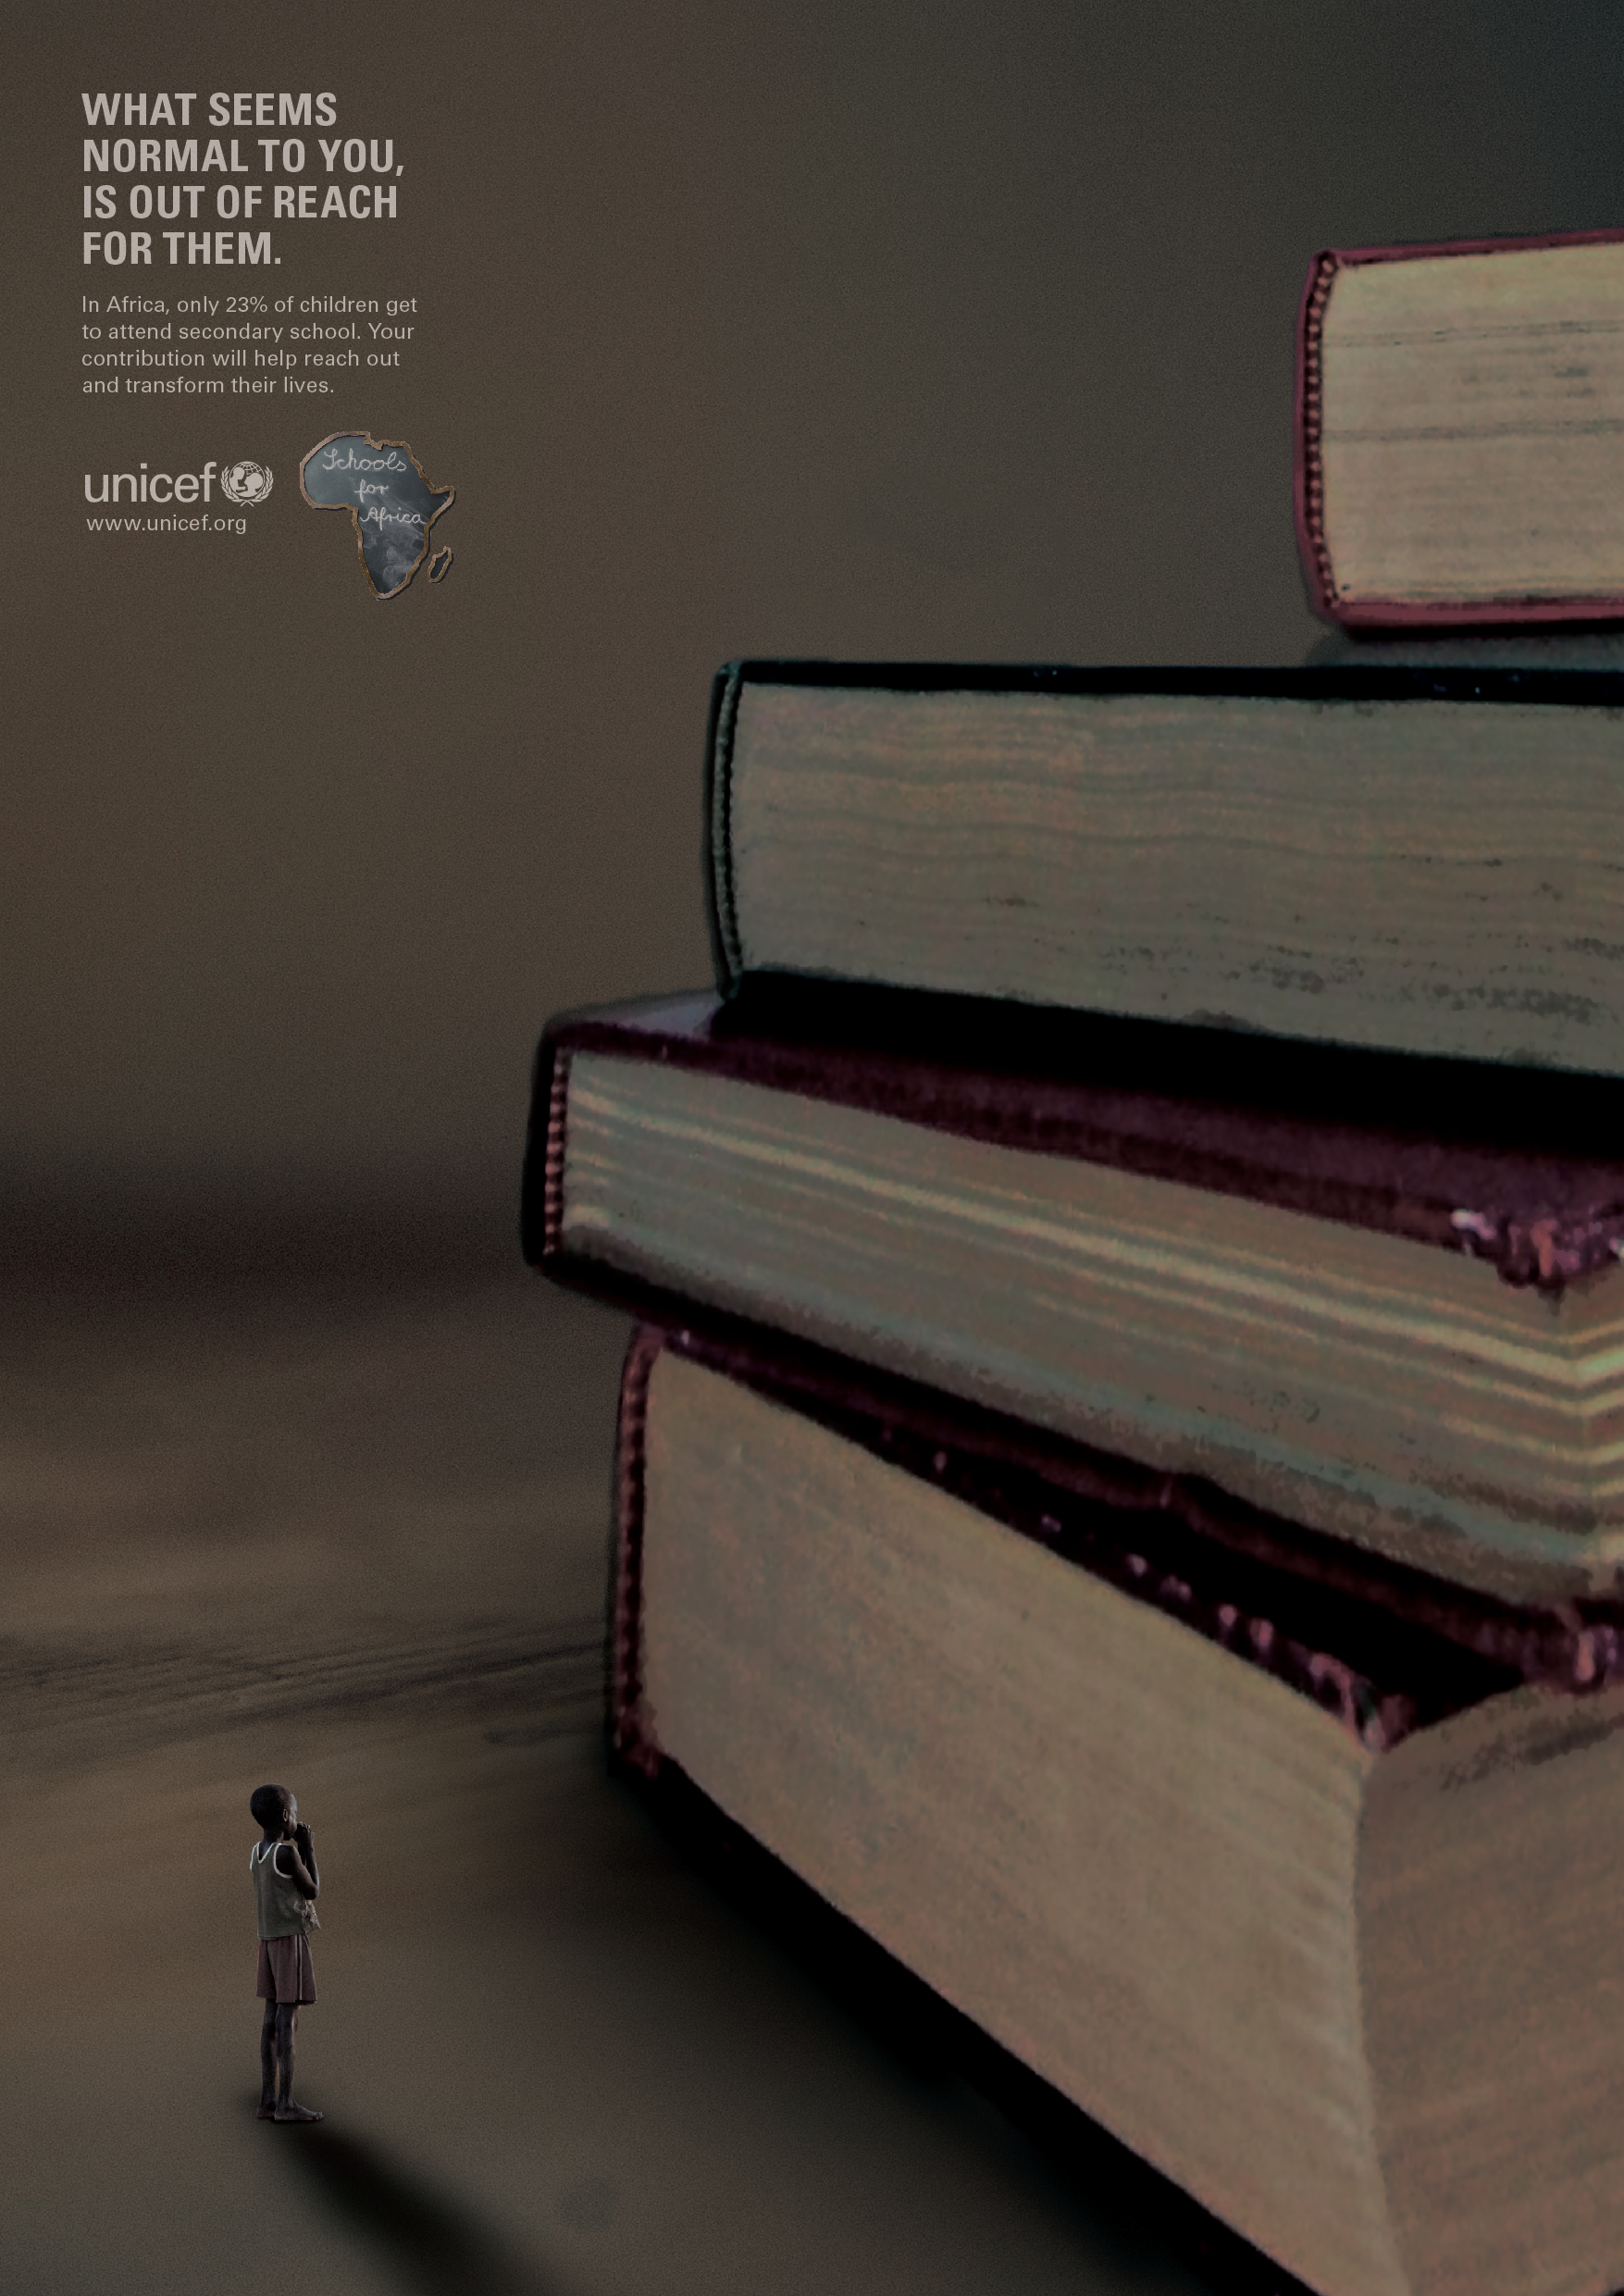 UNICEF Schools for Africa Campaign